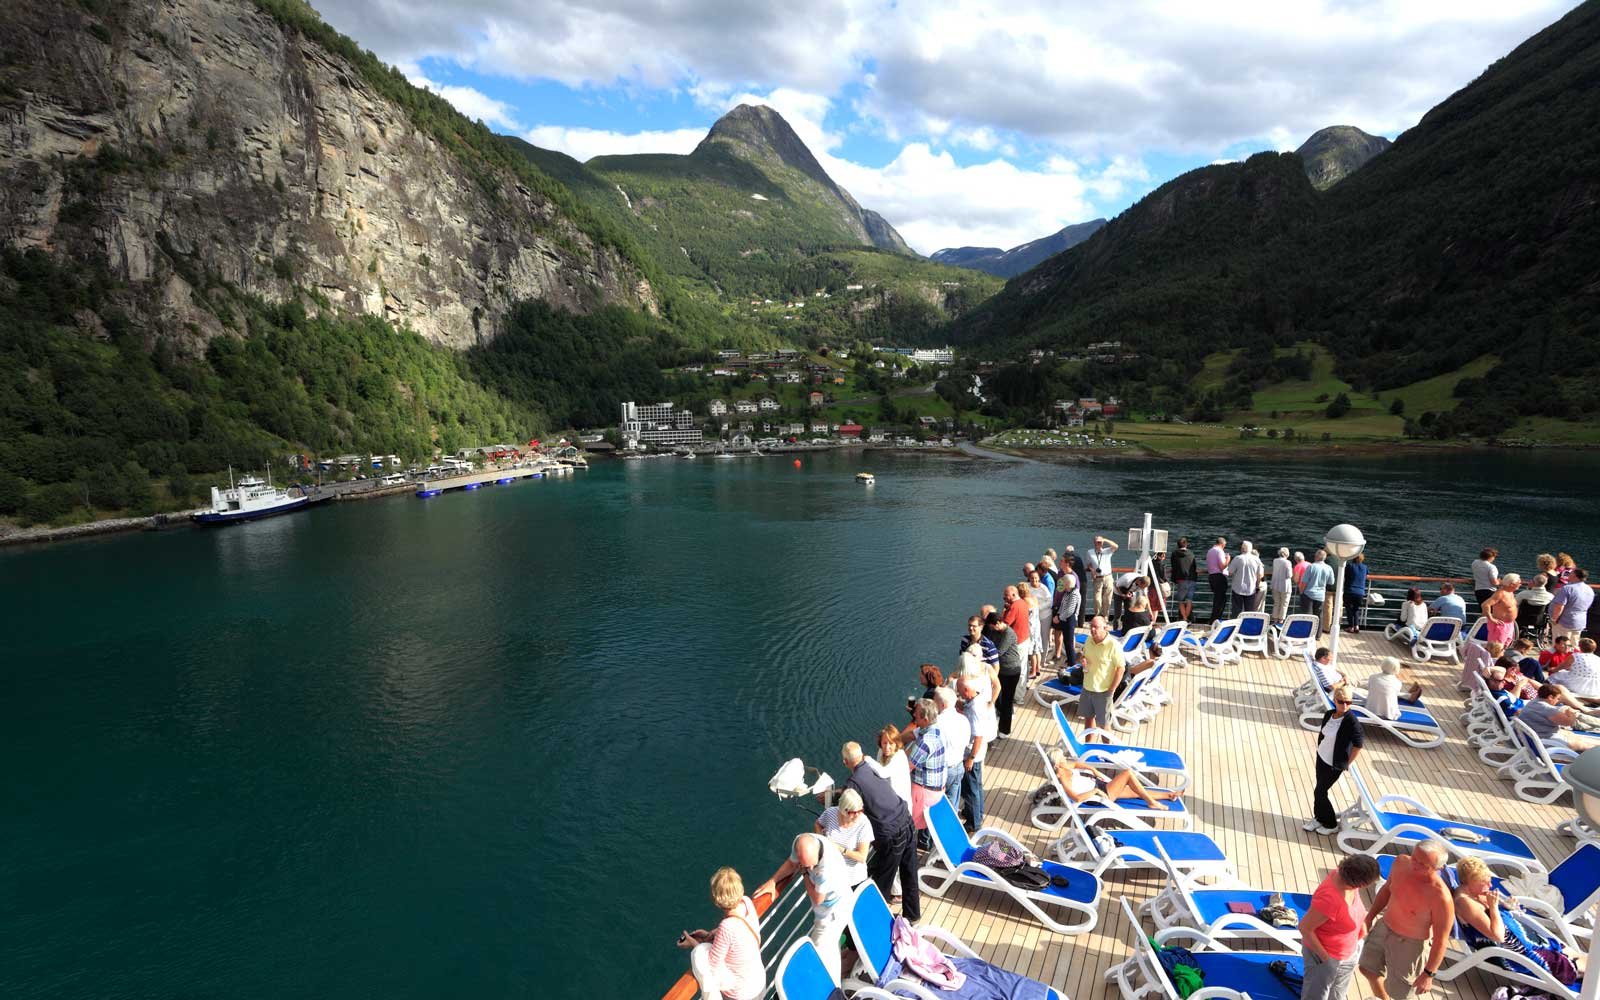 The First Thing You Should Do On Your Next Cruise, According to Travel Insiders